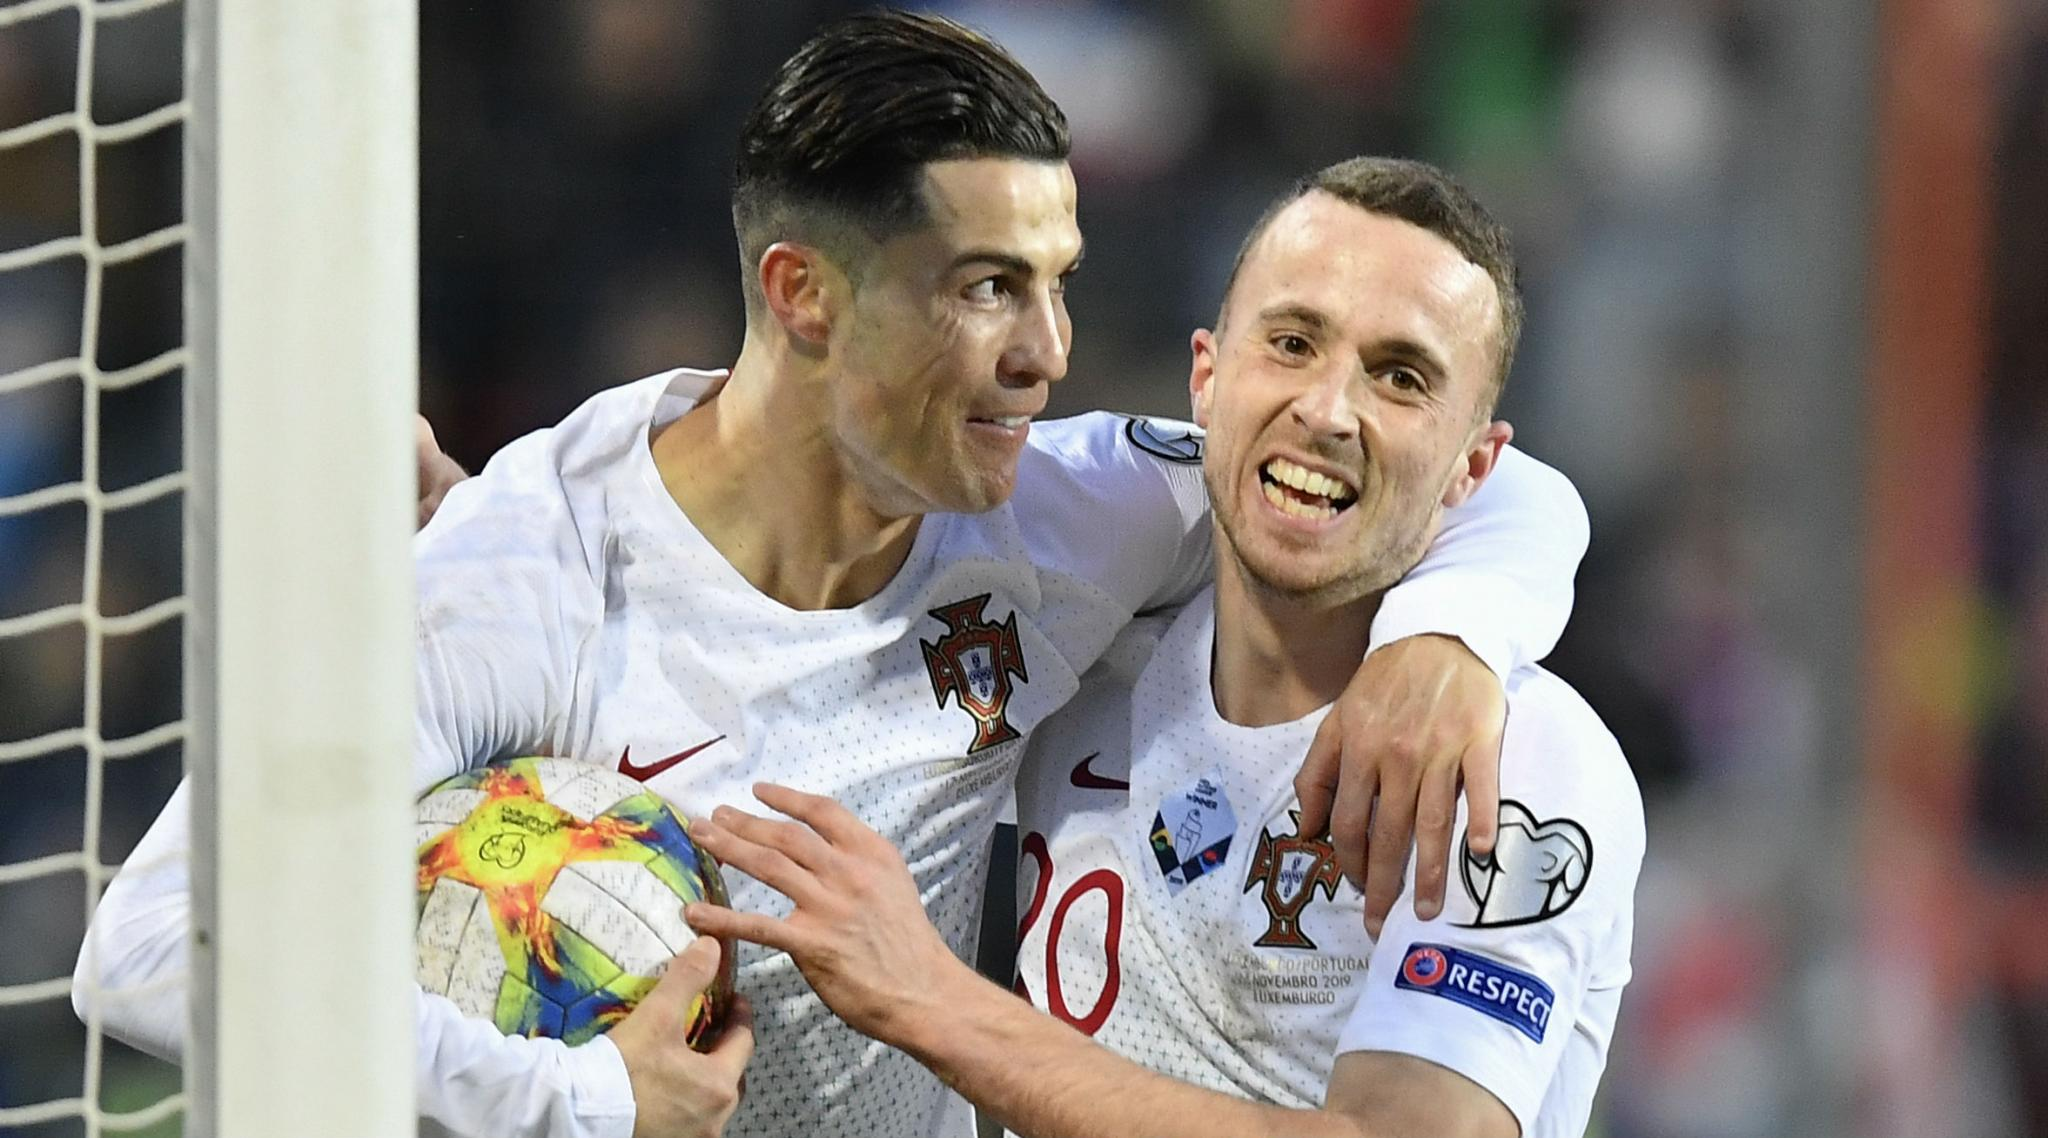 Cristiano Ronaldo After Securing Euro 2020 Qualification Says 'Proud Occasion to Represent National Team'